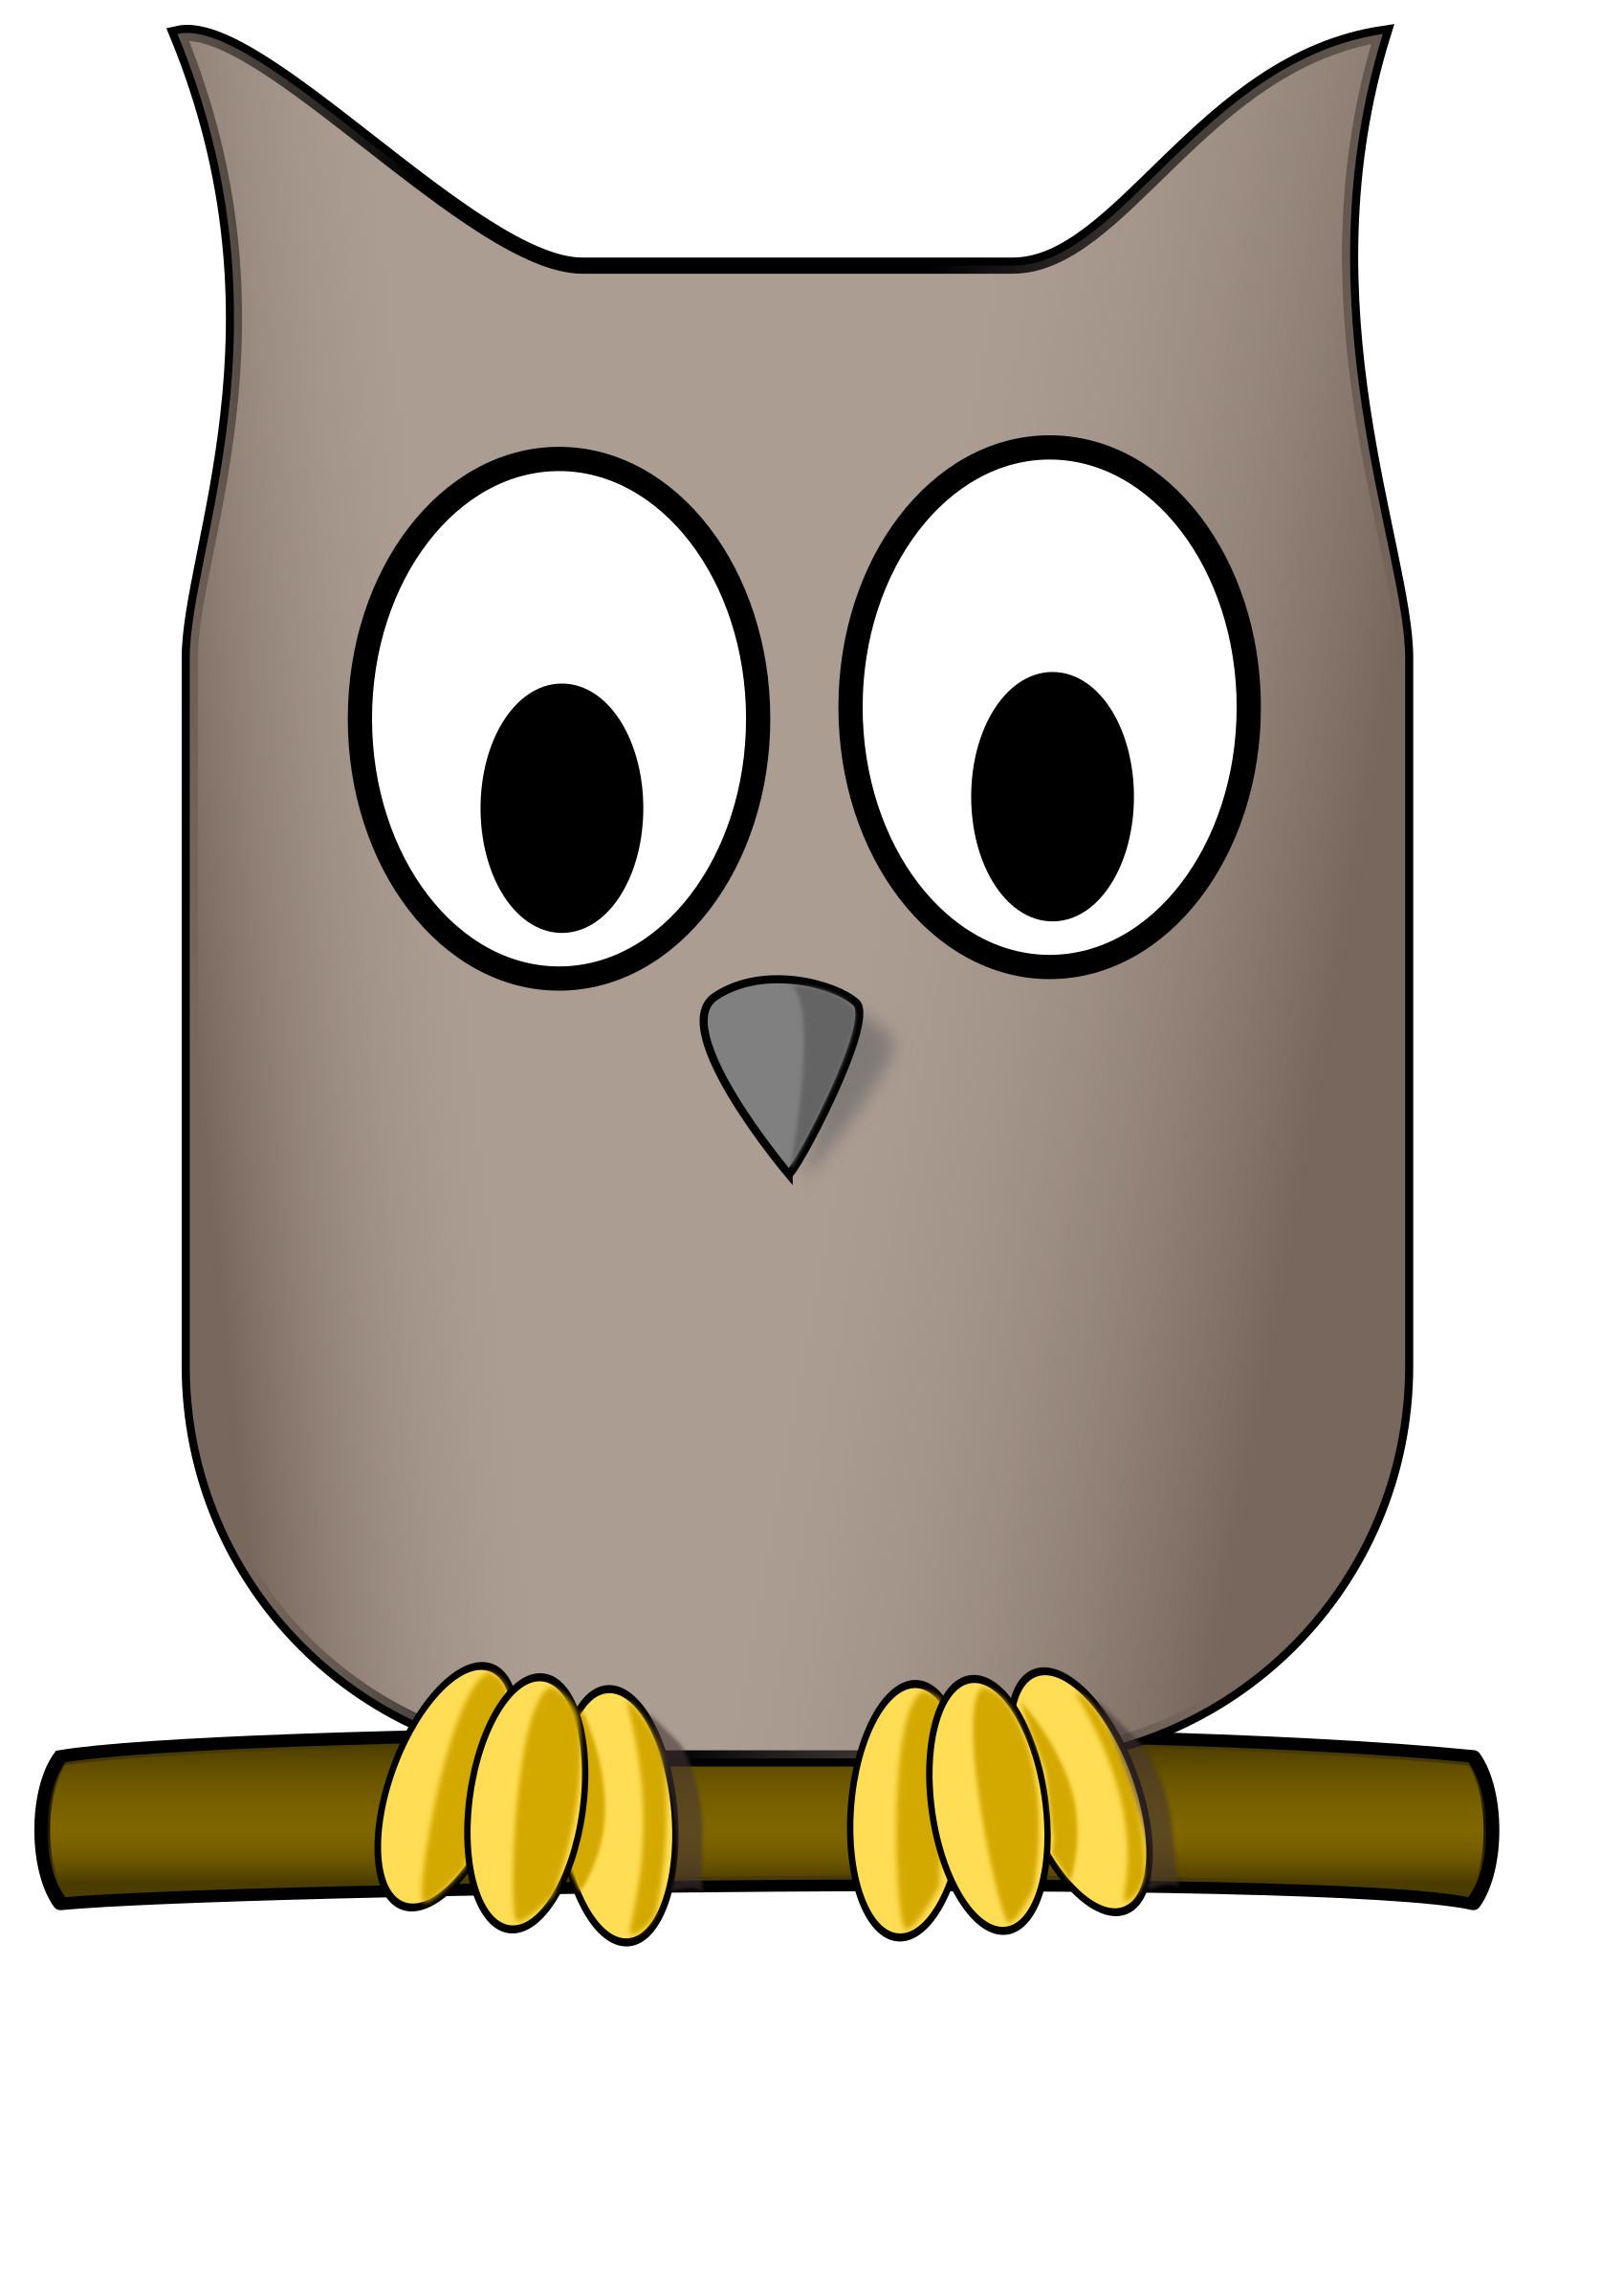 free stock photo of cartoon owl perched on tree public domain